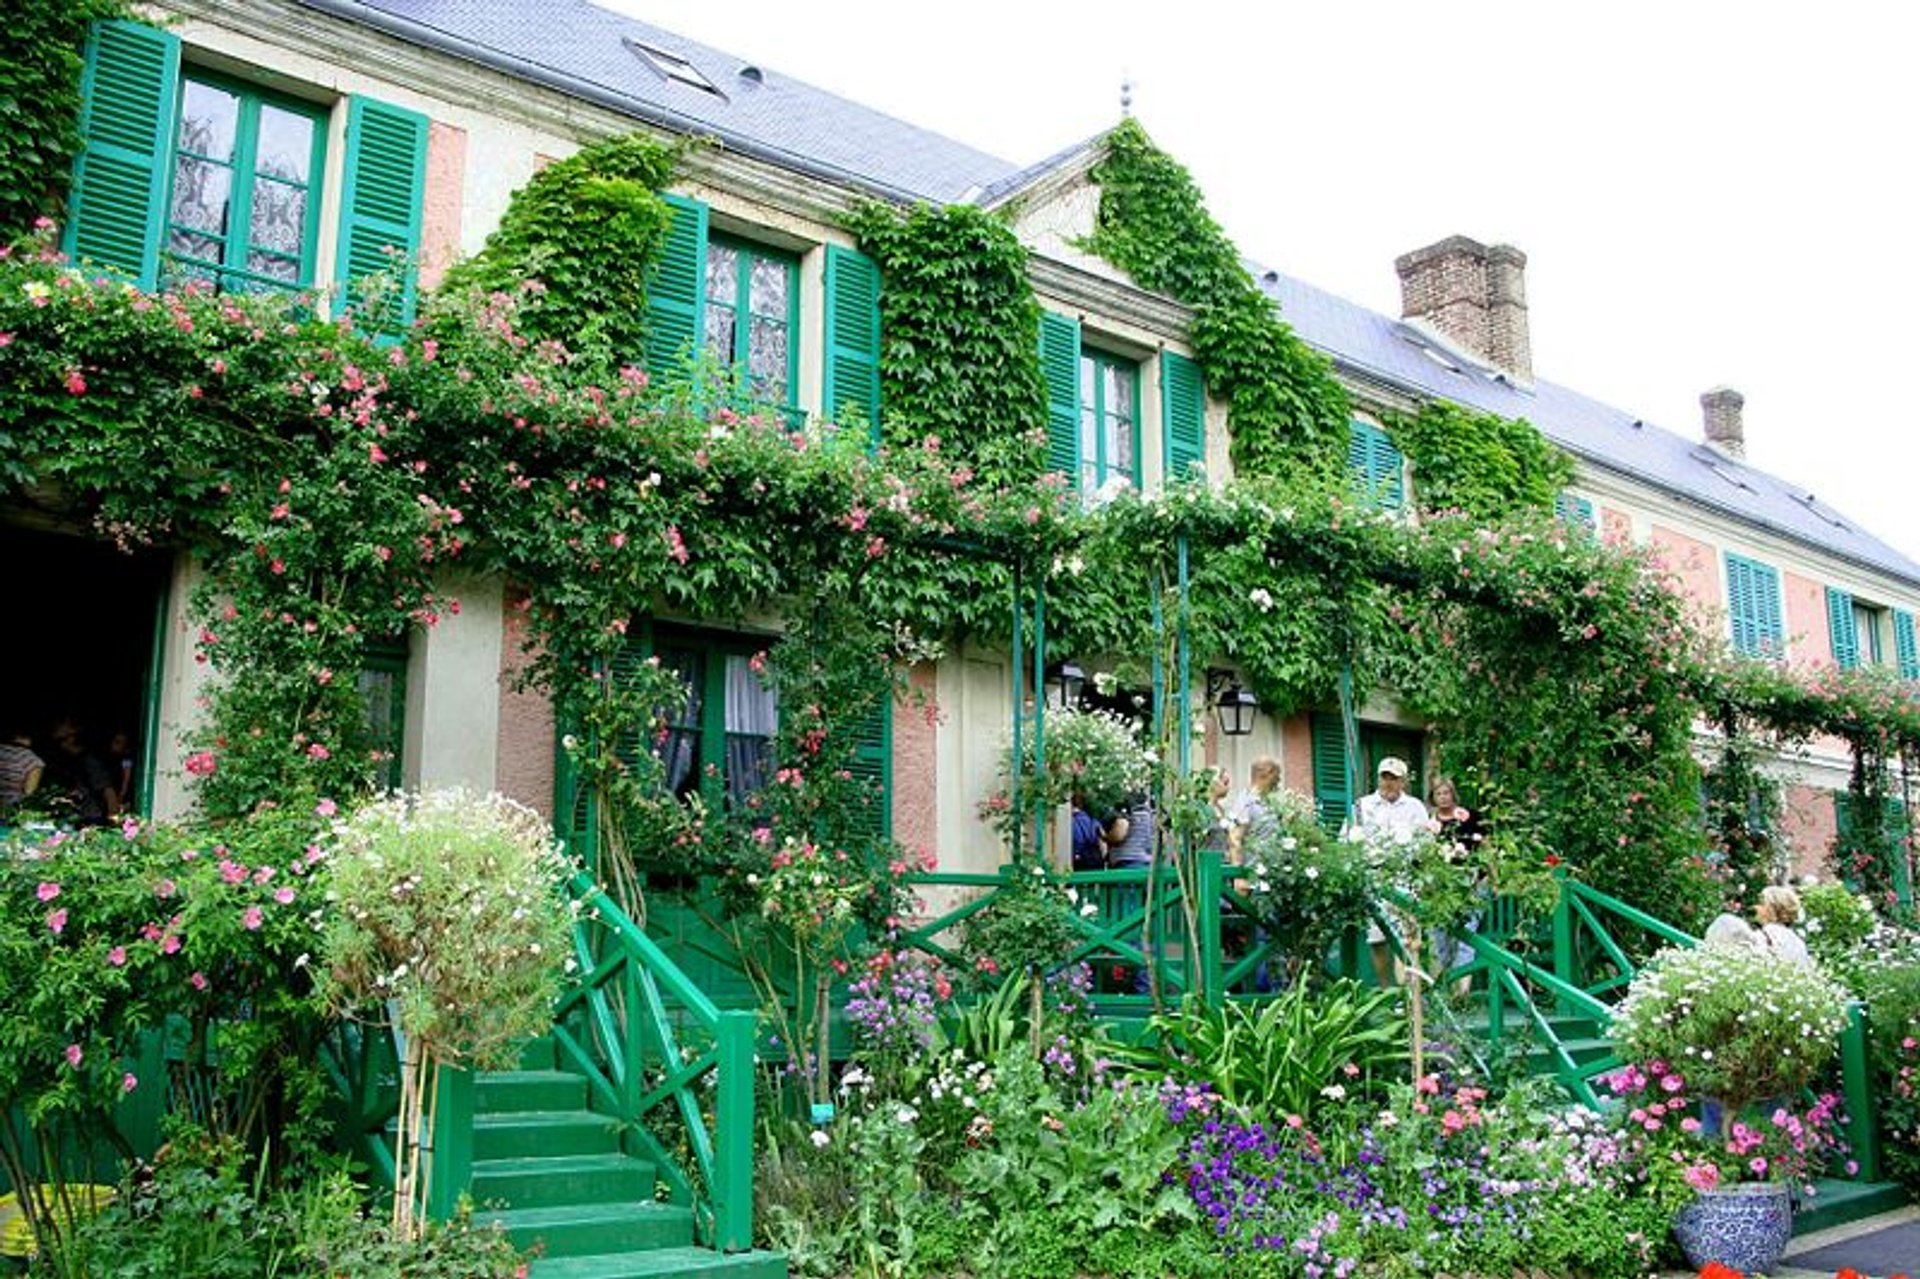 Best Time For Claude Monet S House Gardens In Giverny France 2019